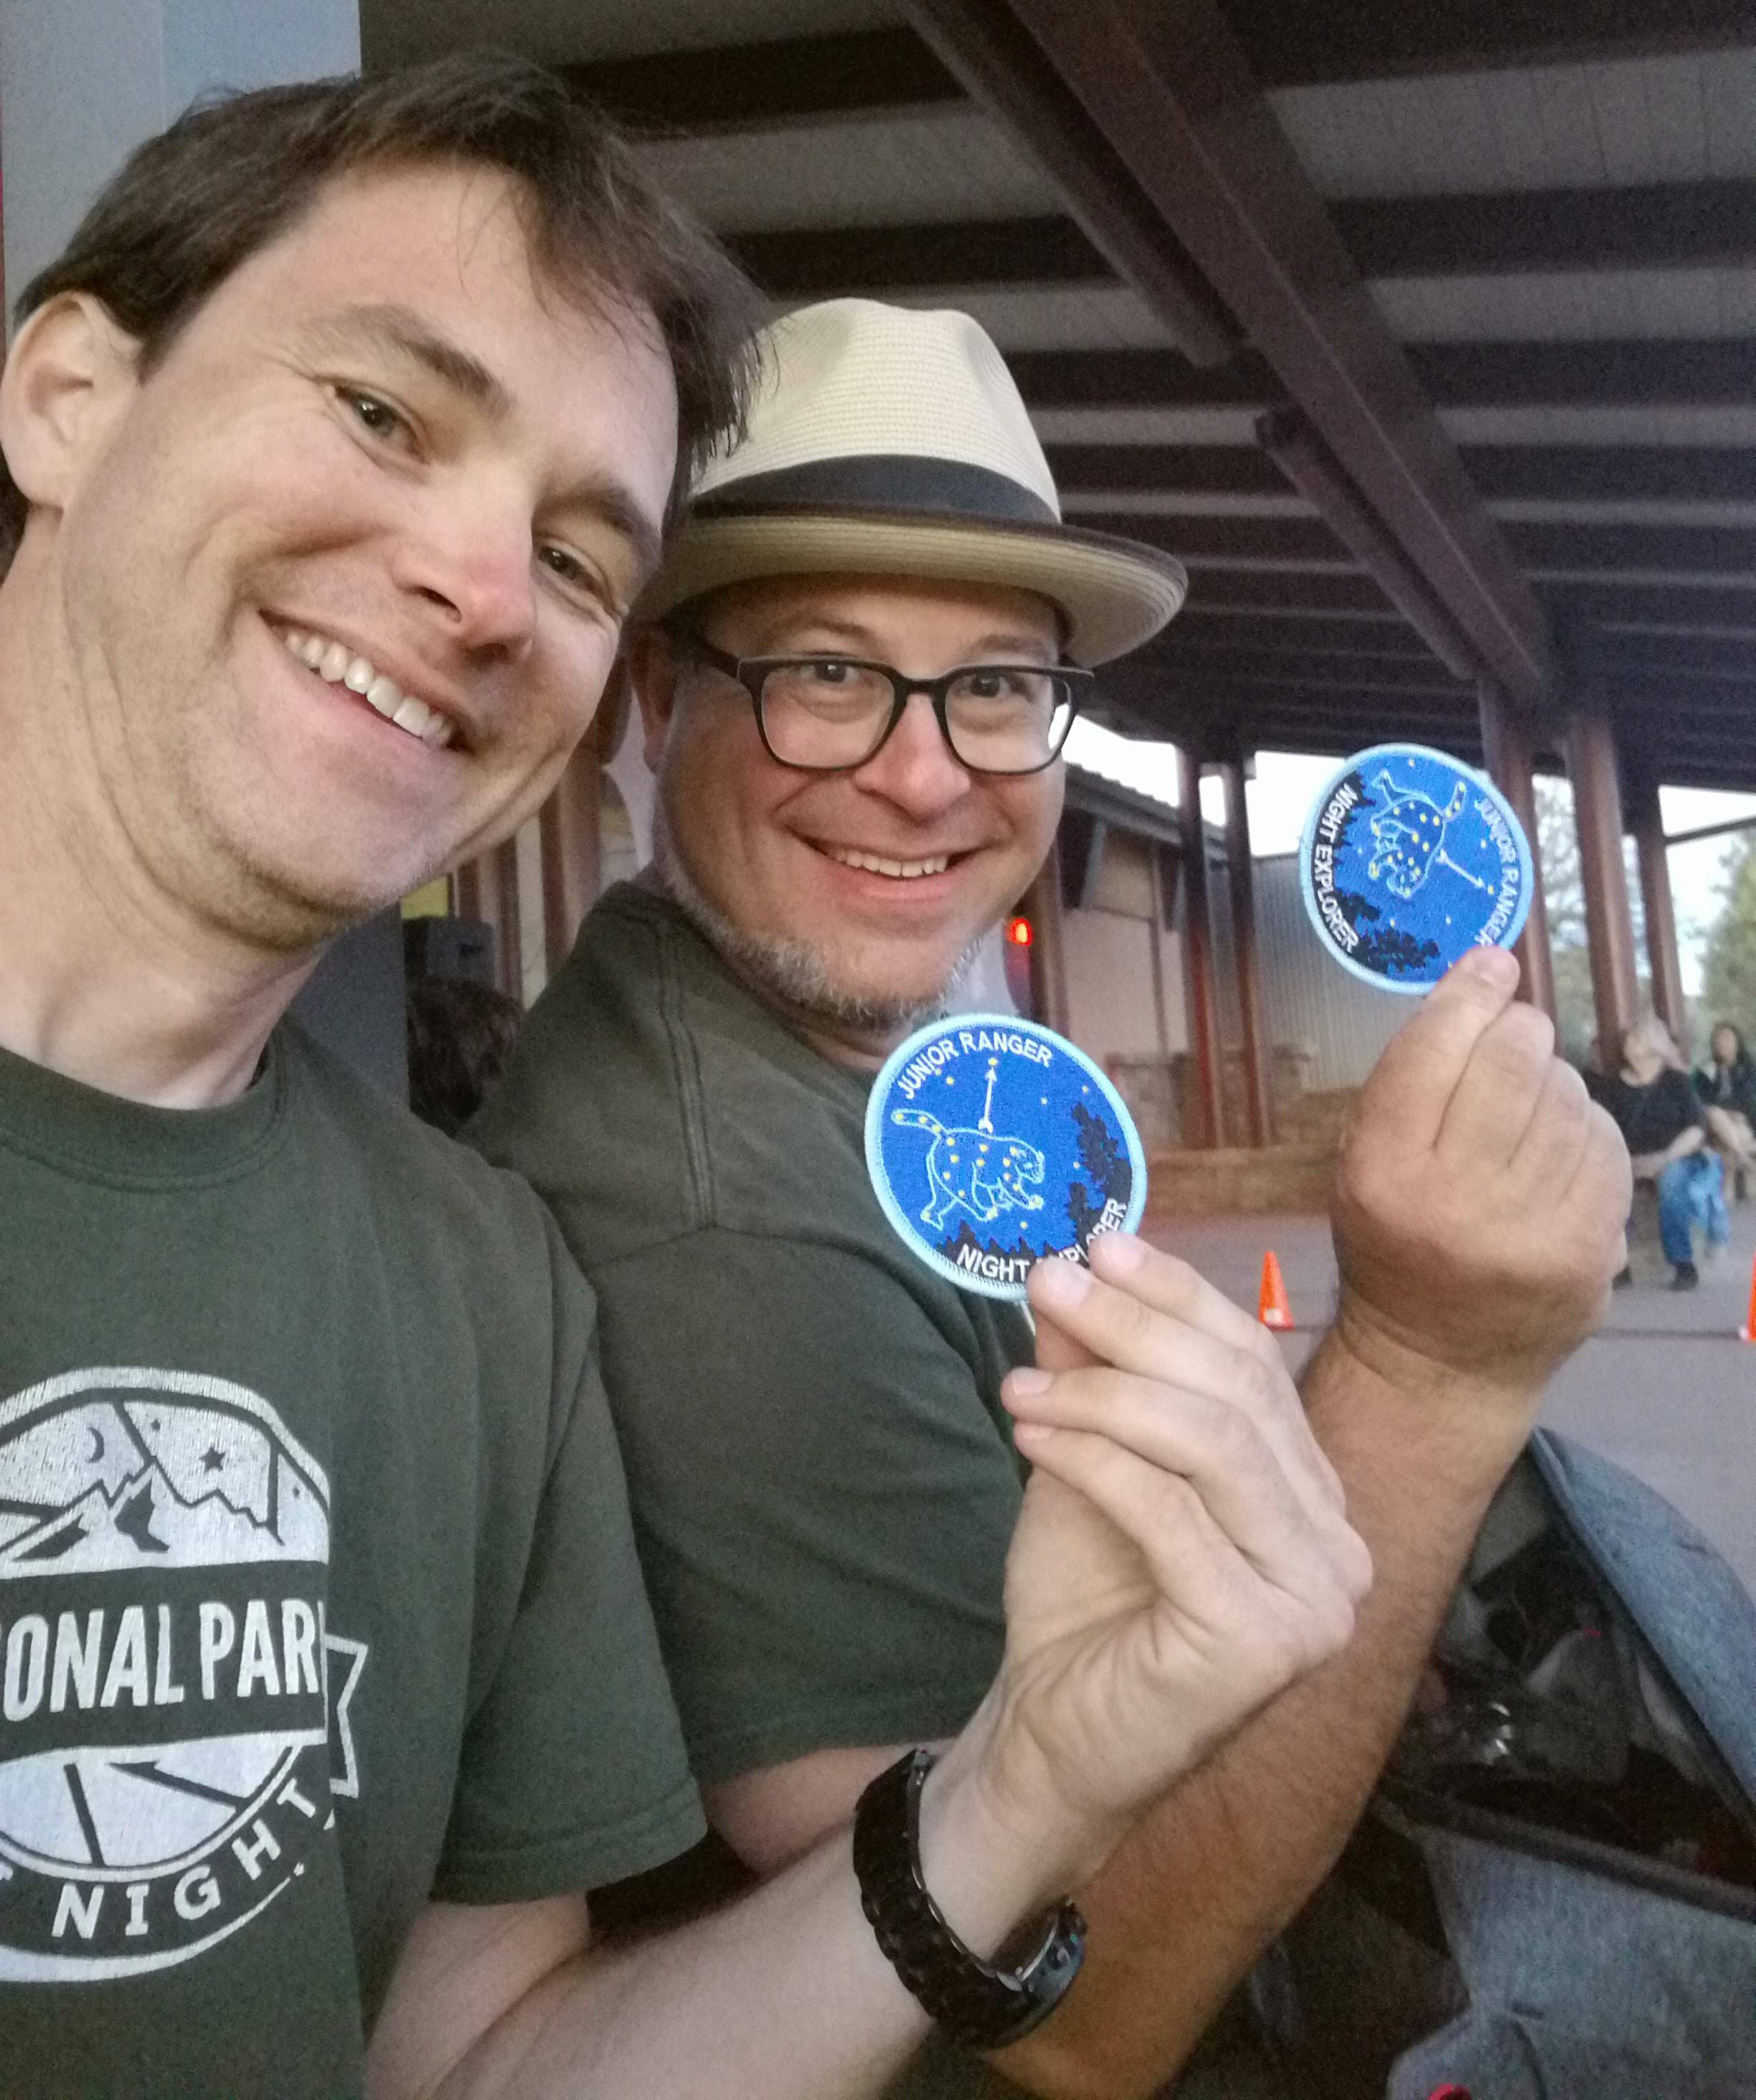 Gabe and I with our hard-earned Junior Ranger Night Explorer patches.